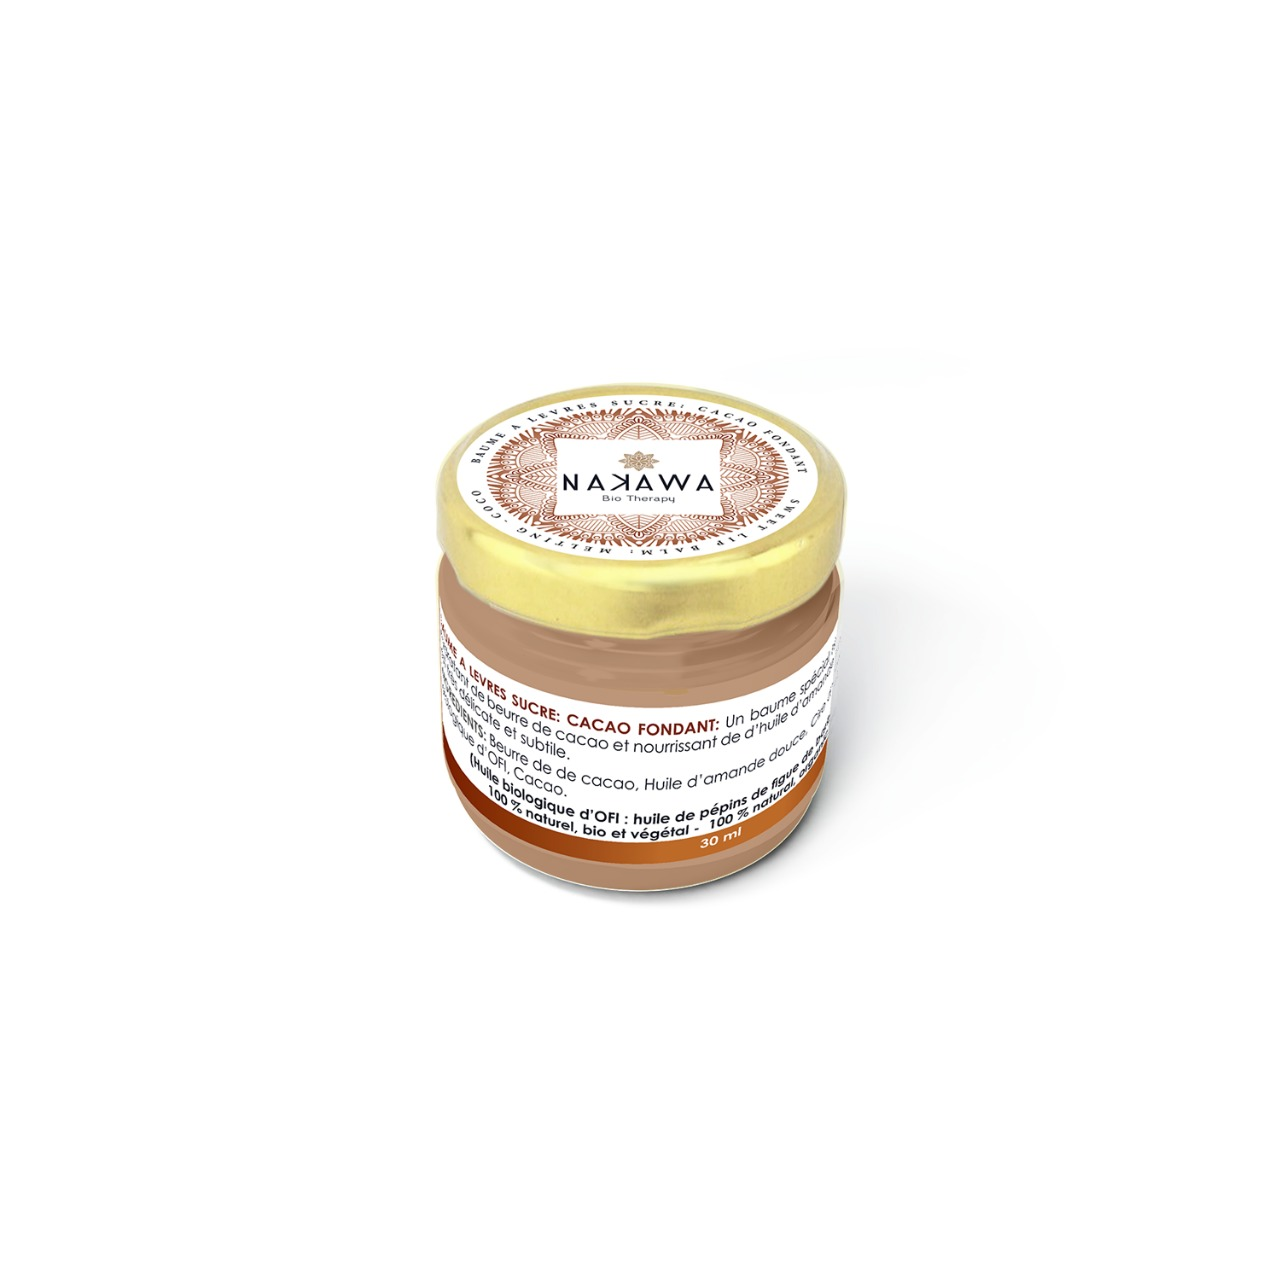 SWEET LIP BALM - MELTING COCO - Nakawa Bio Tunisia